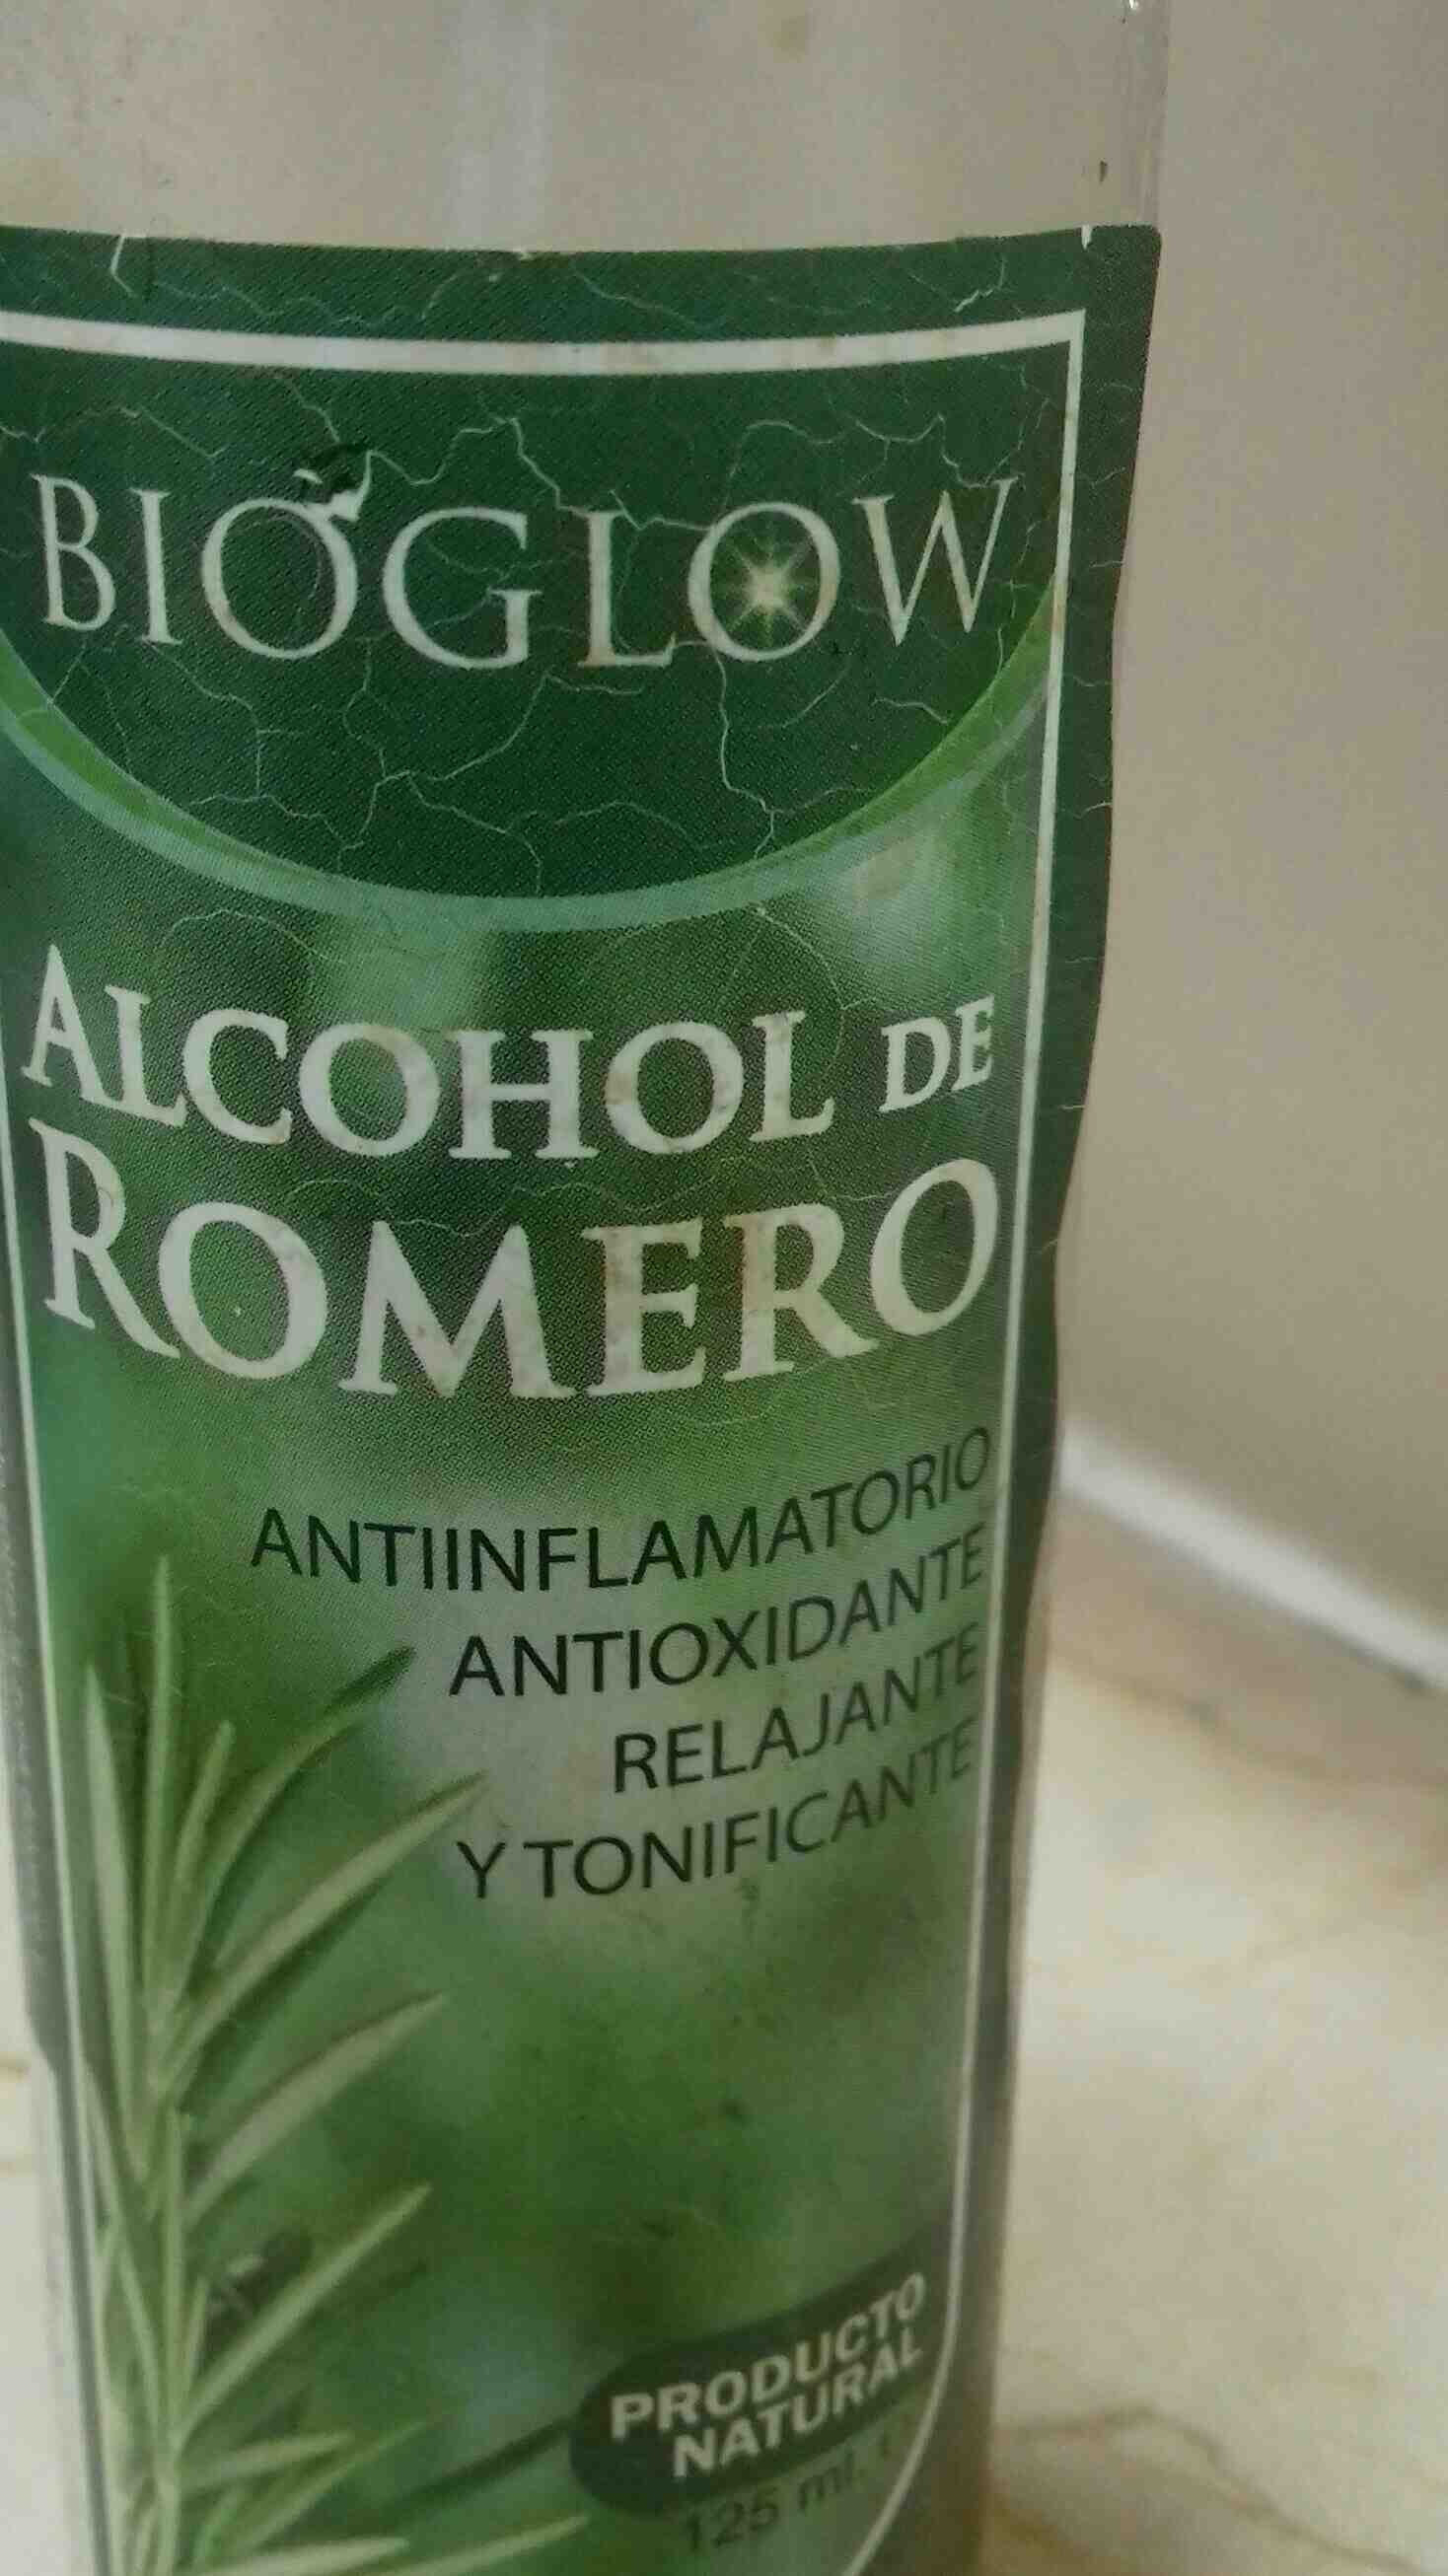 alcohol de romero - Ingredients - en